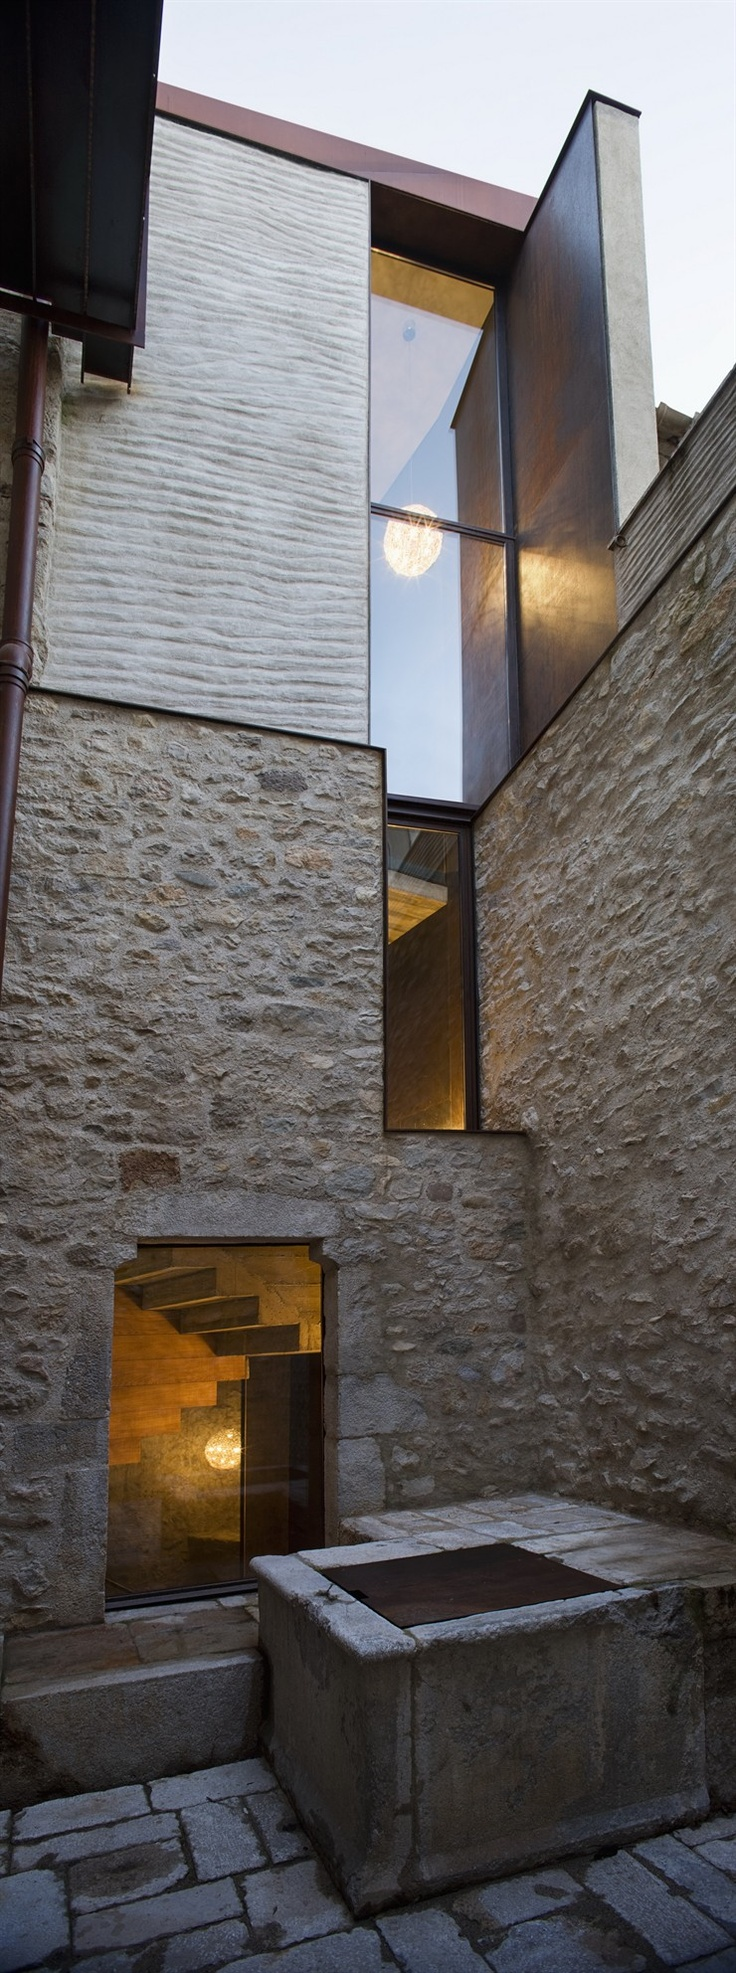 Alemanys 5 - Beautiful restoration in Girona, Spain by Anna Noguera Architects: Architects, Anna Noguera, Enric Duch, Photo Enric, Noguera Nieto, Alemani, House, Architecture, Modern Homes